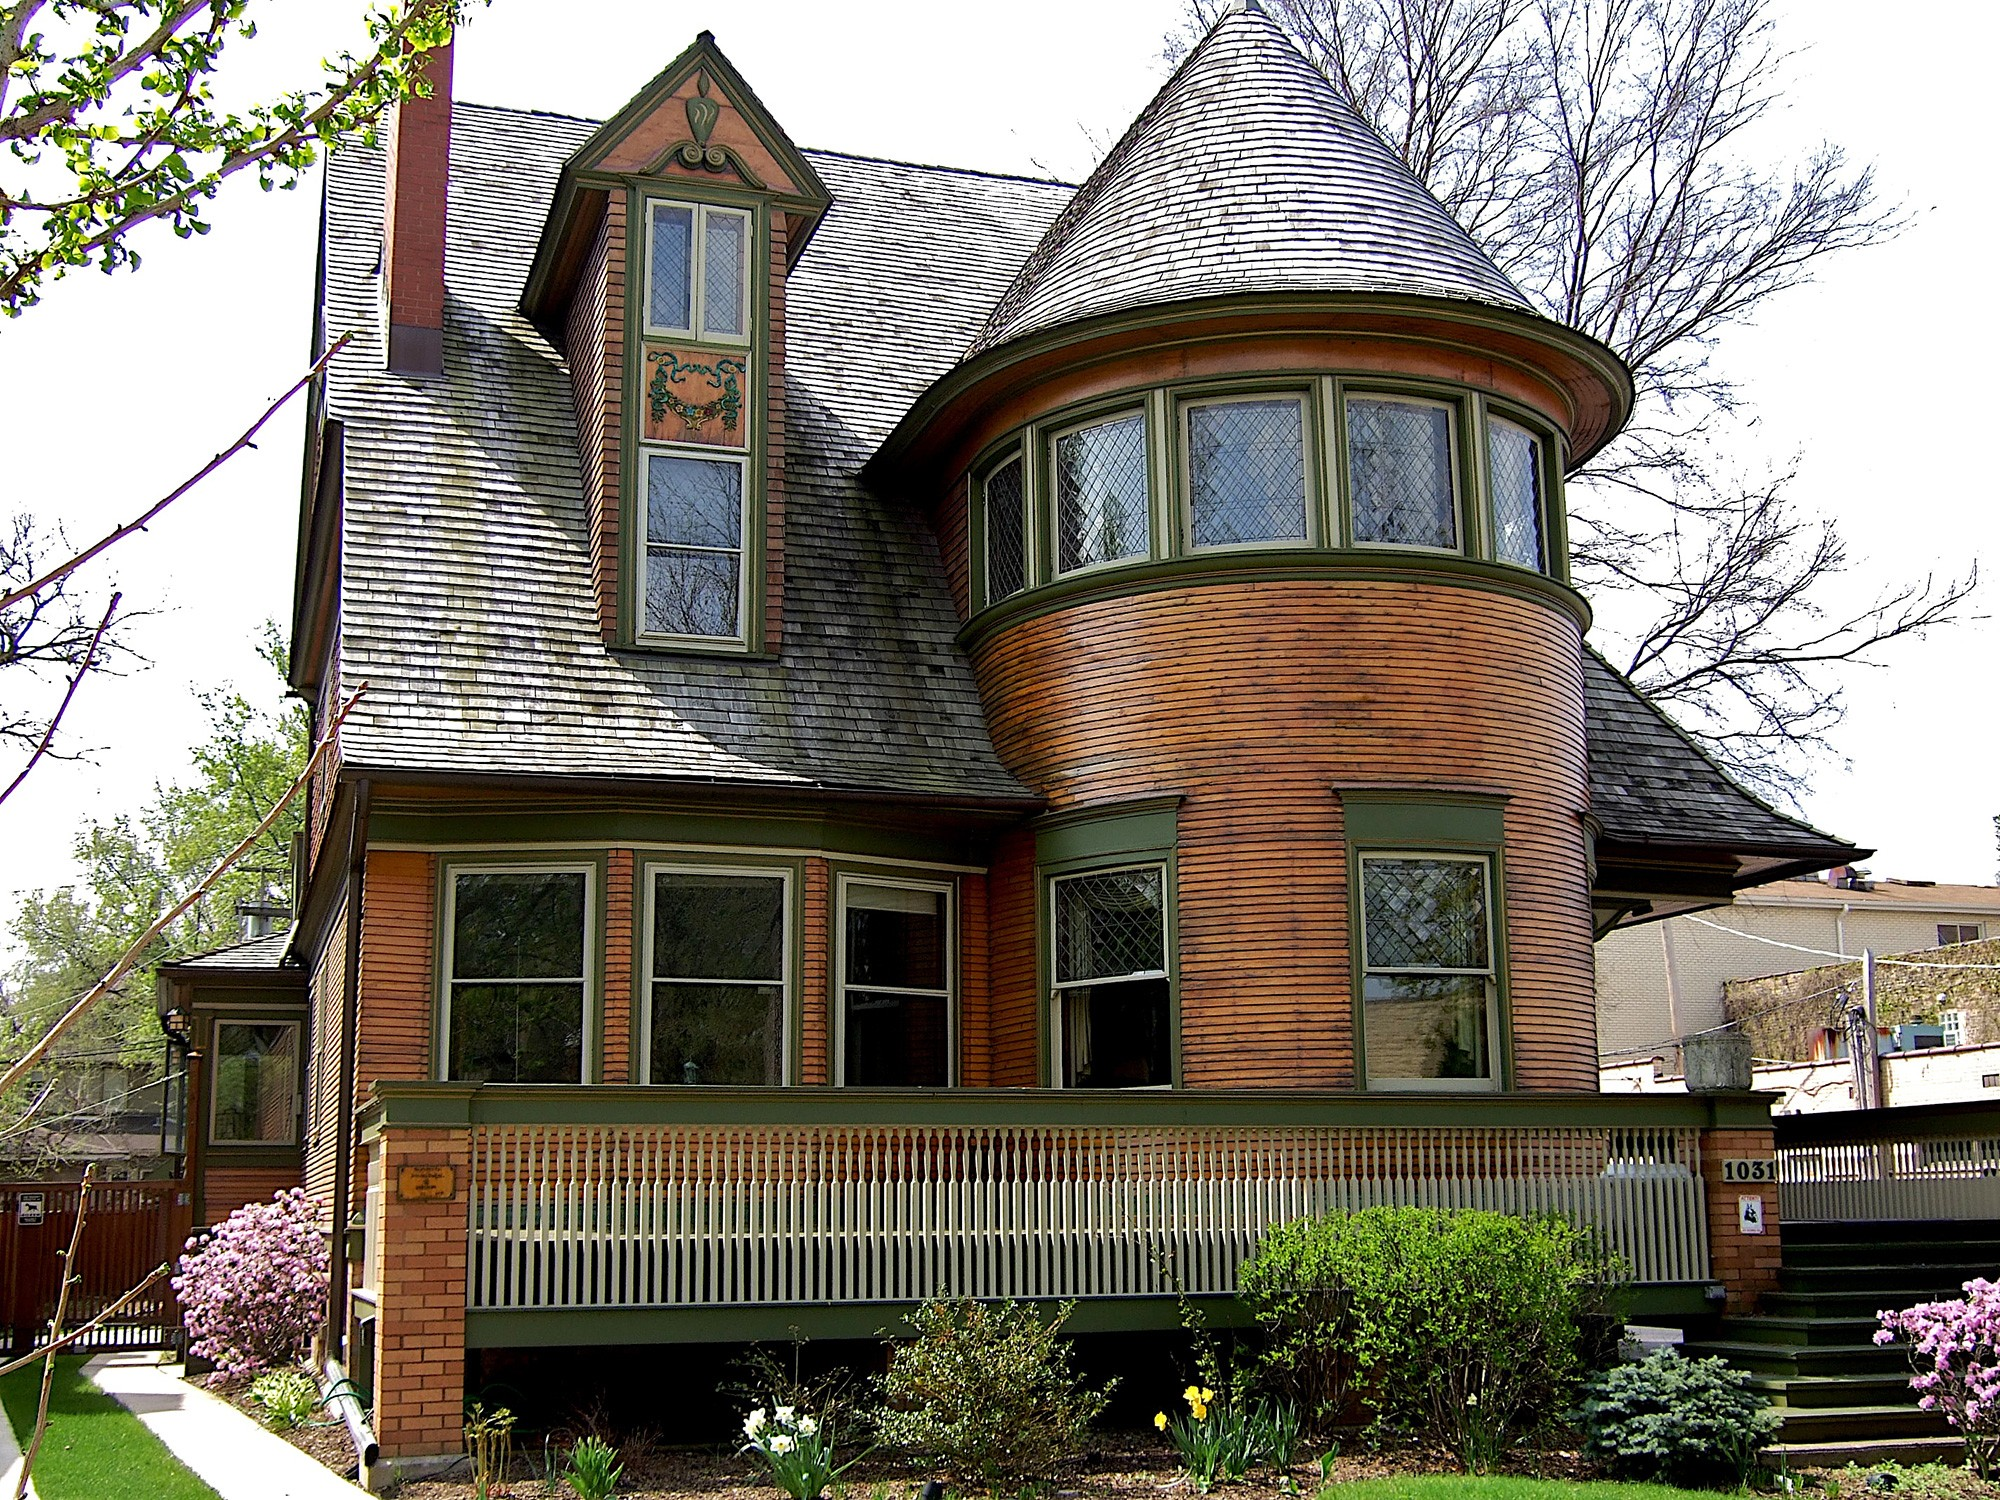 Frank lloyd wright in oak park tours chicago - Frank lloyd wright structures ...